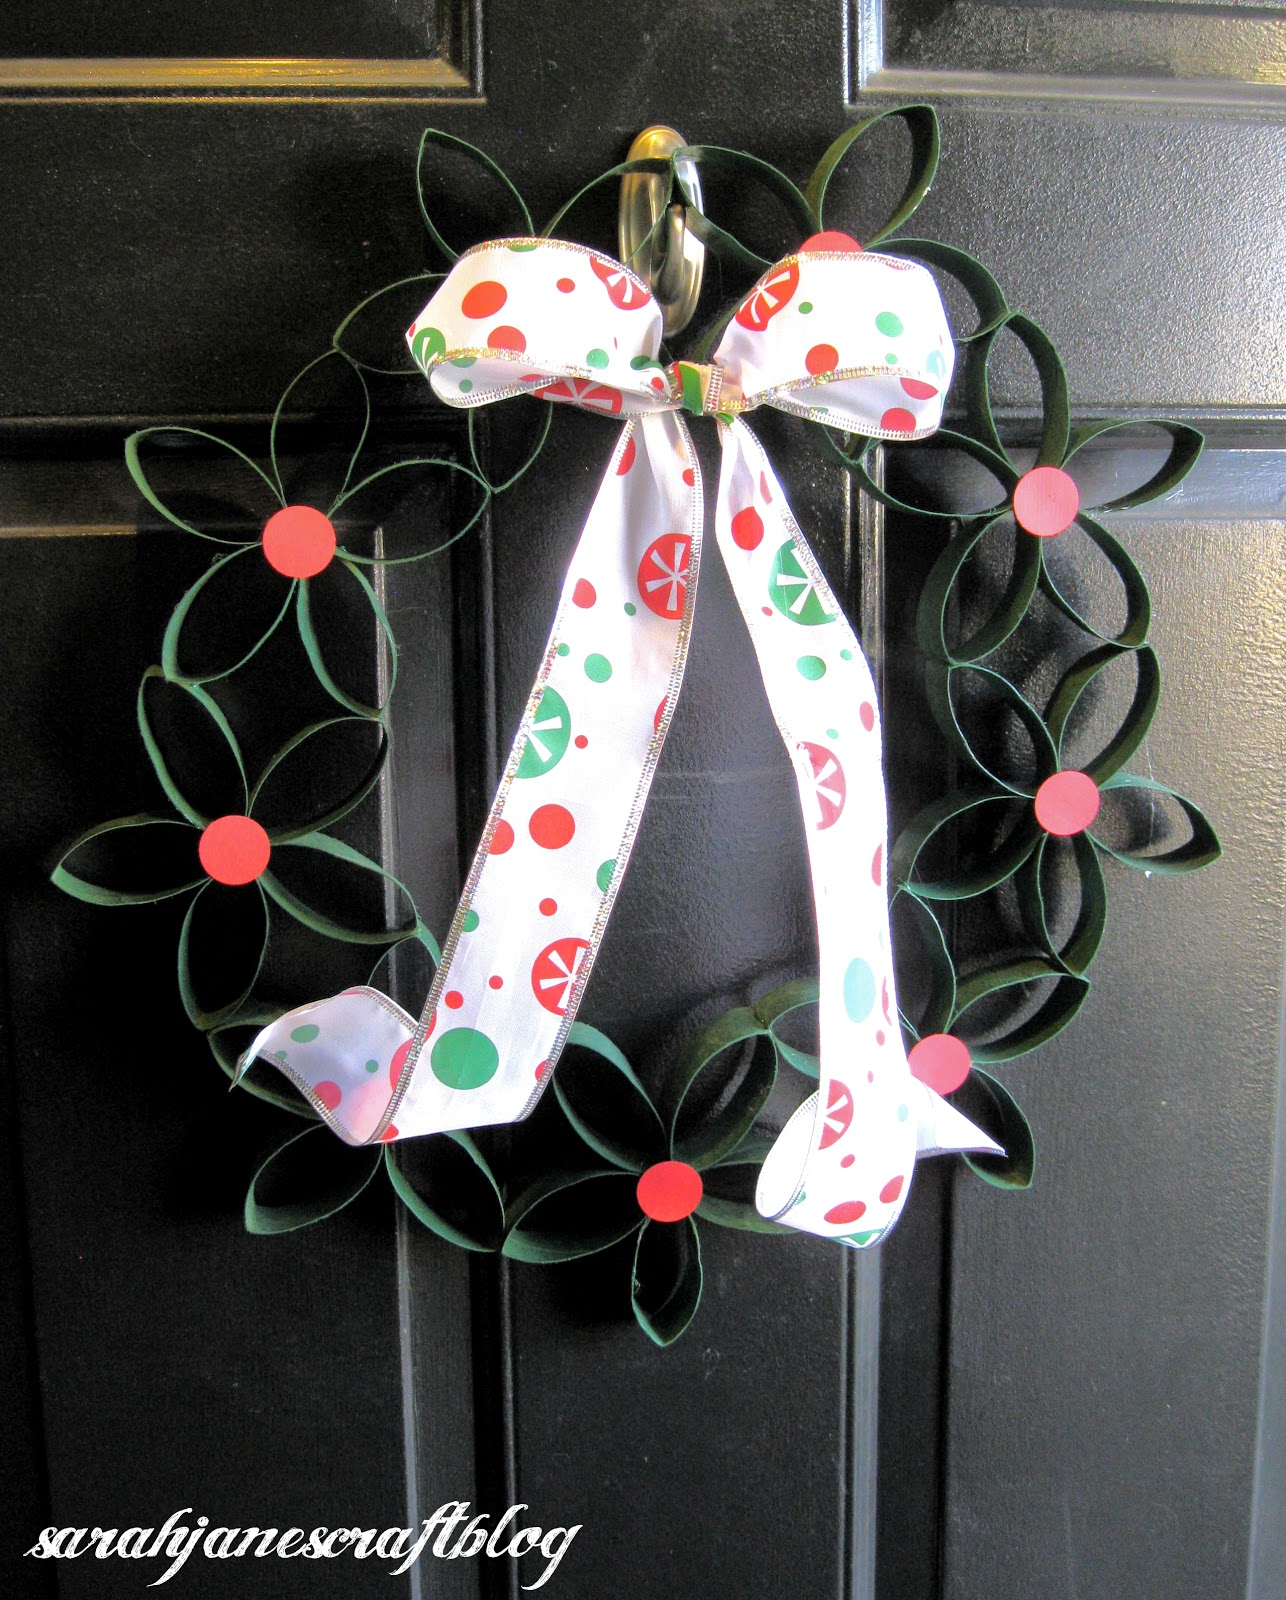 Sarah jane 39 s craft blog cardboard tube christmas wreath for Where to buy cardboard tubes for craft